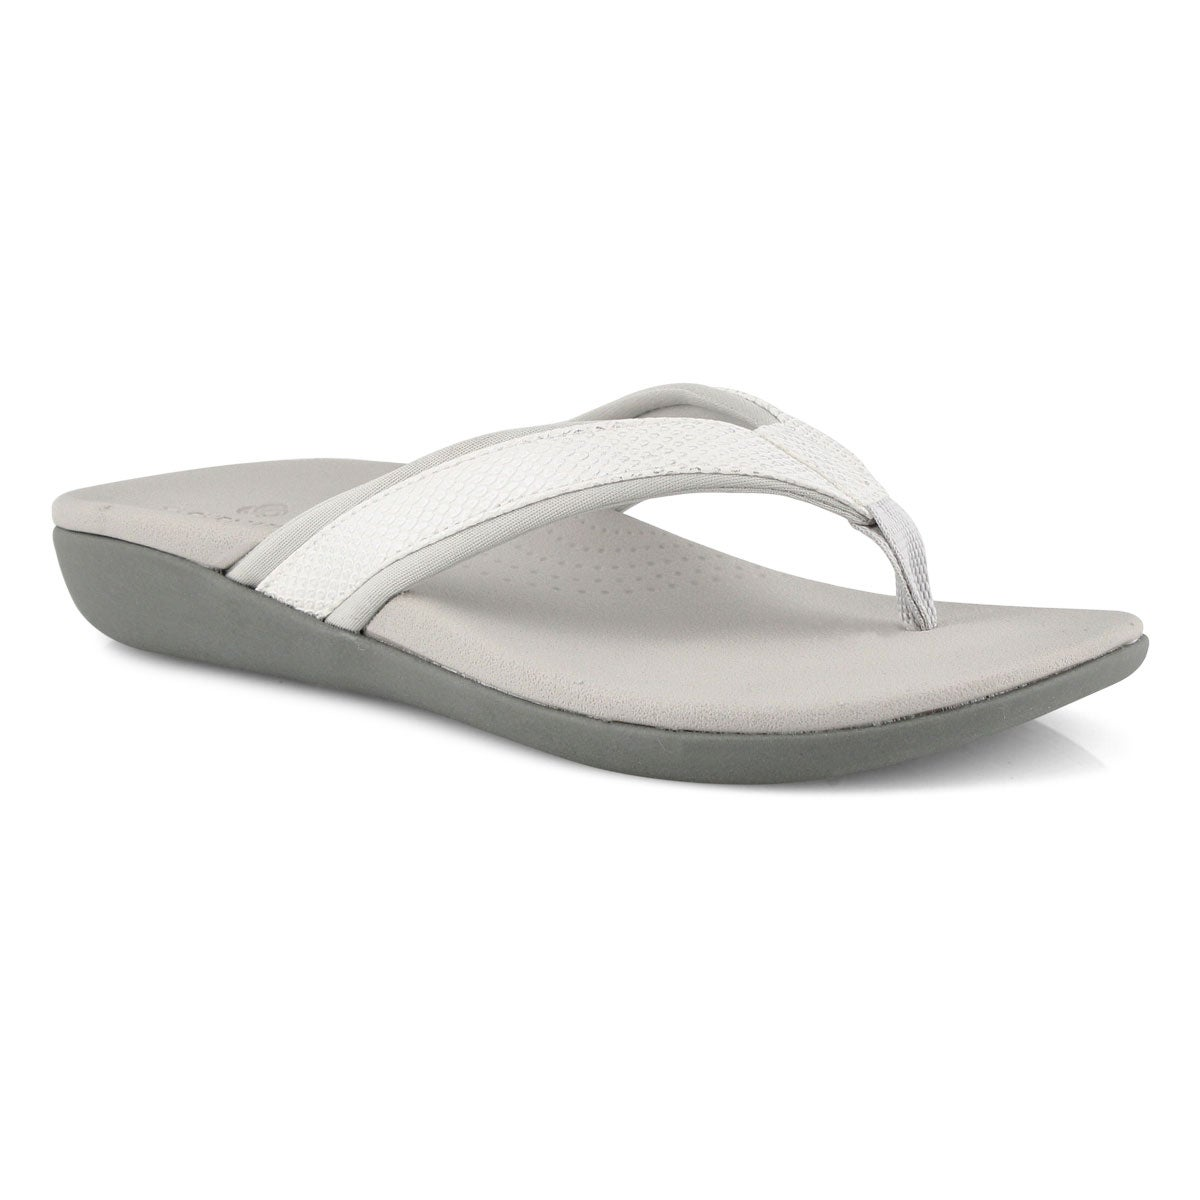 Lds Brio Sol white snake casual sandal